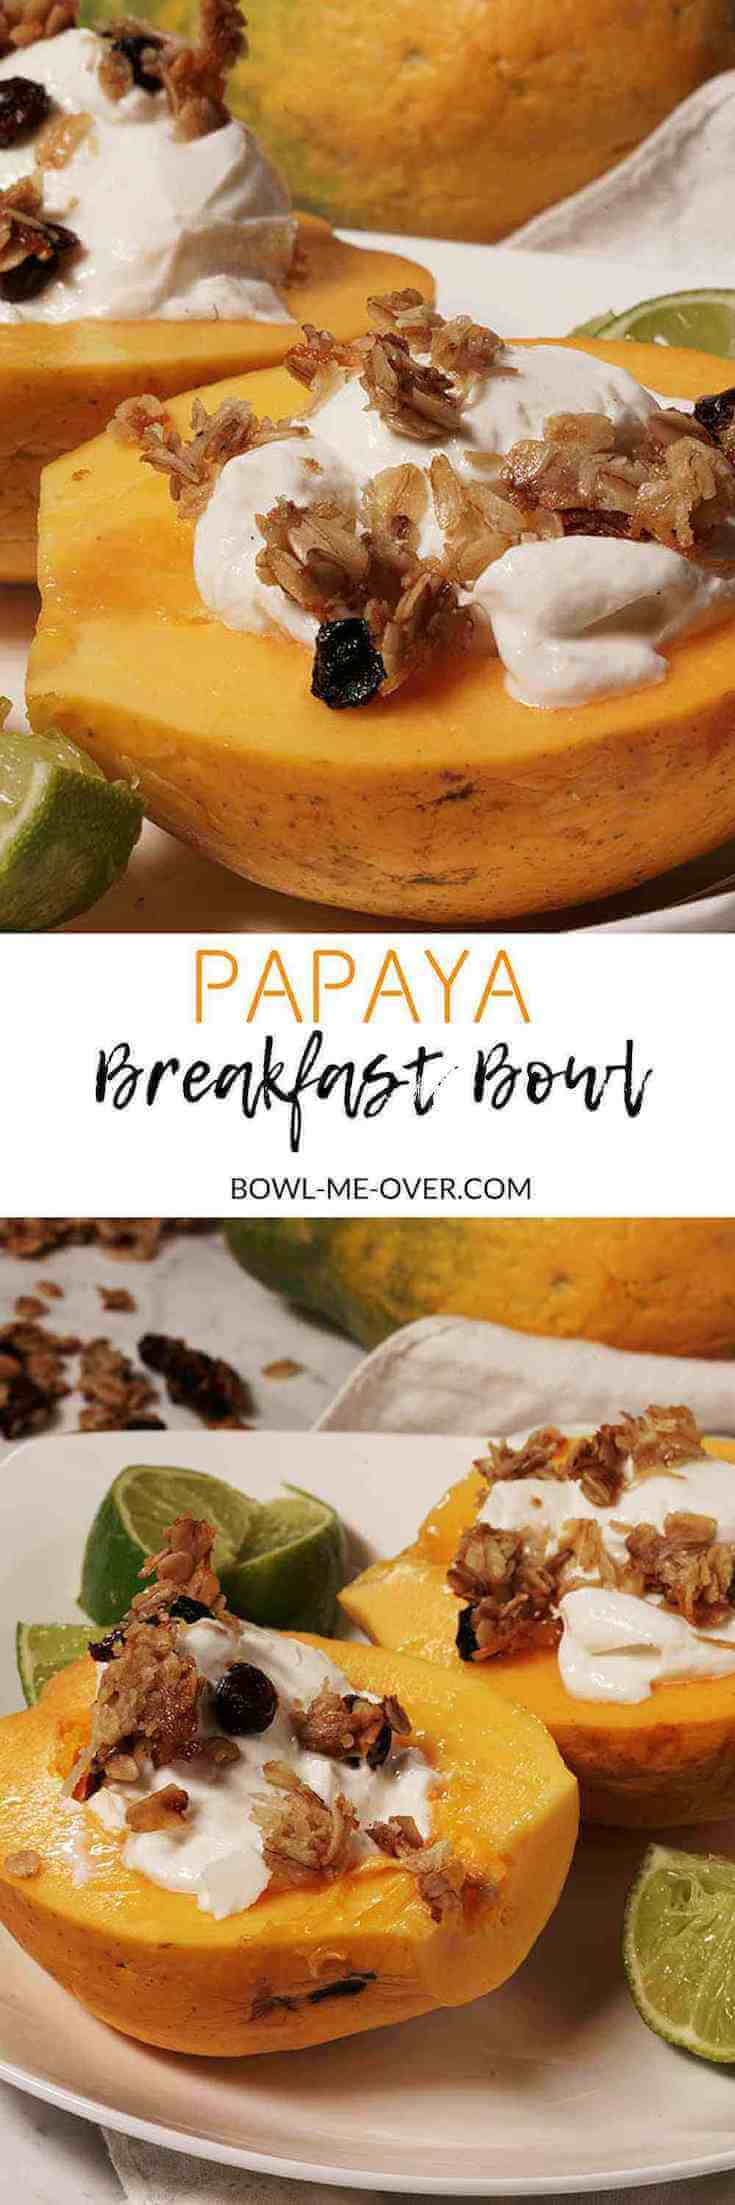 Sliced papayas filled with thick greek yogurt and topped with granola and surrounded by wedges of lime.